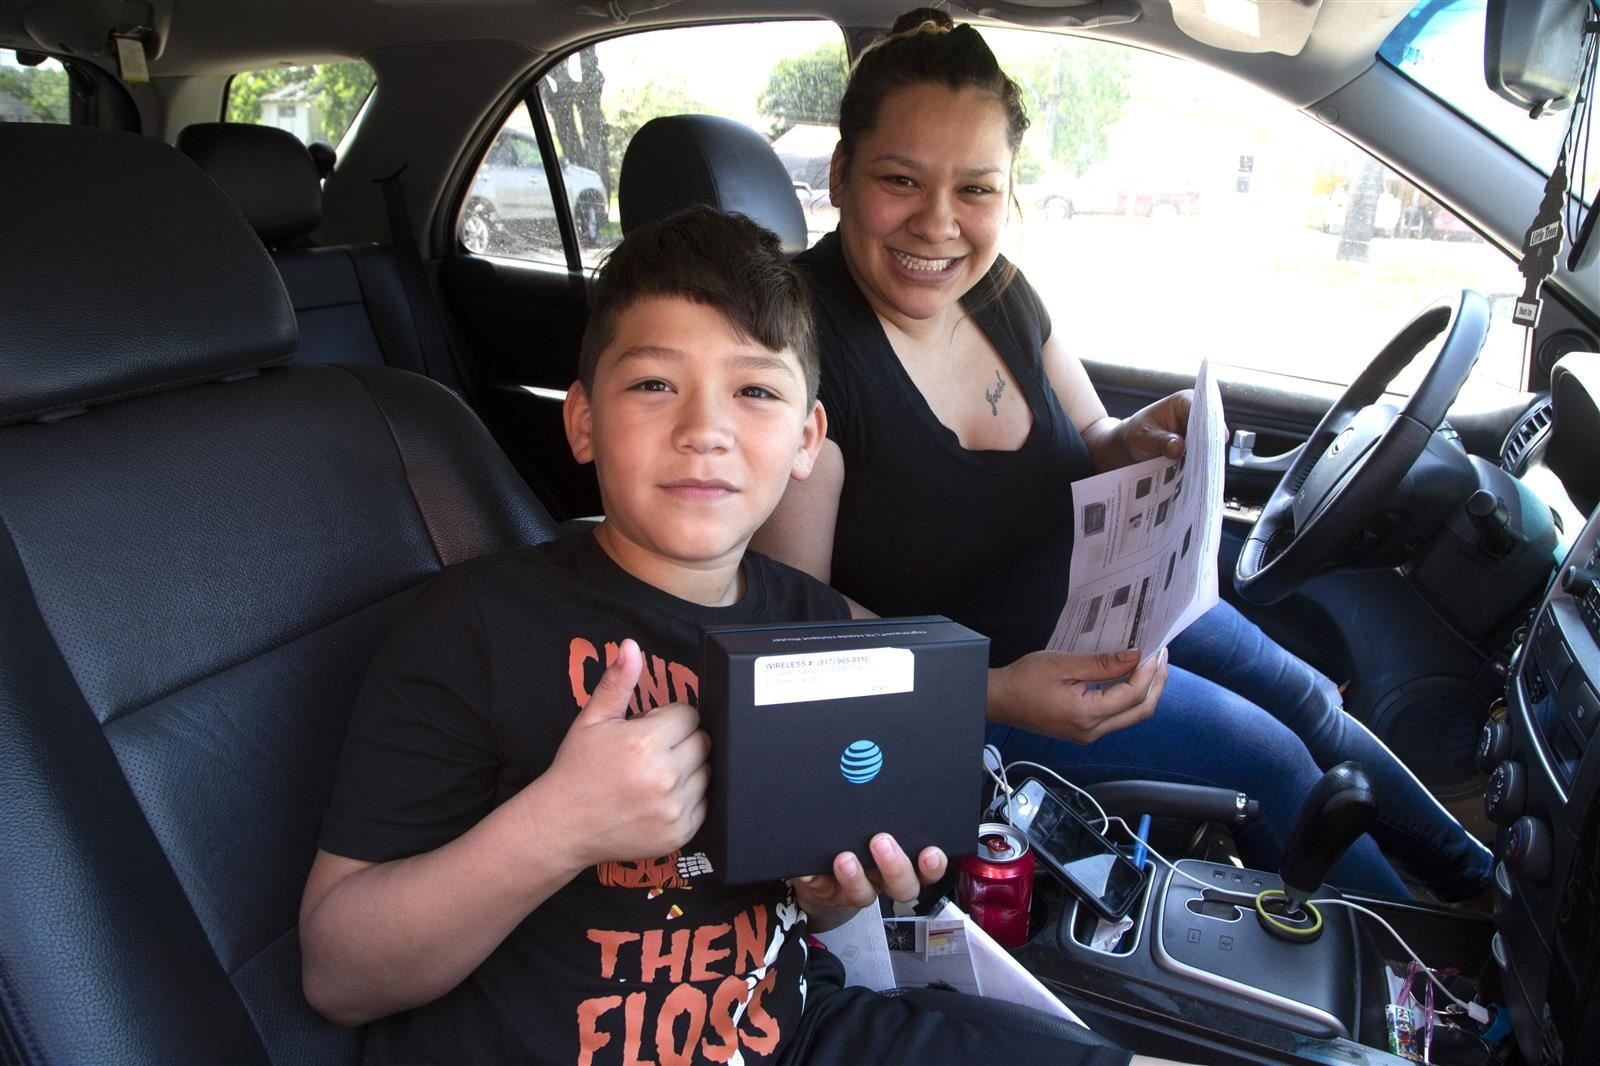 Fort Worth ISD Parents and Students Drive-Thru to Pick-Up Hotspots